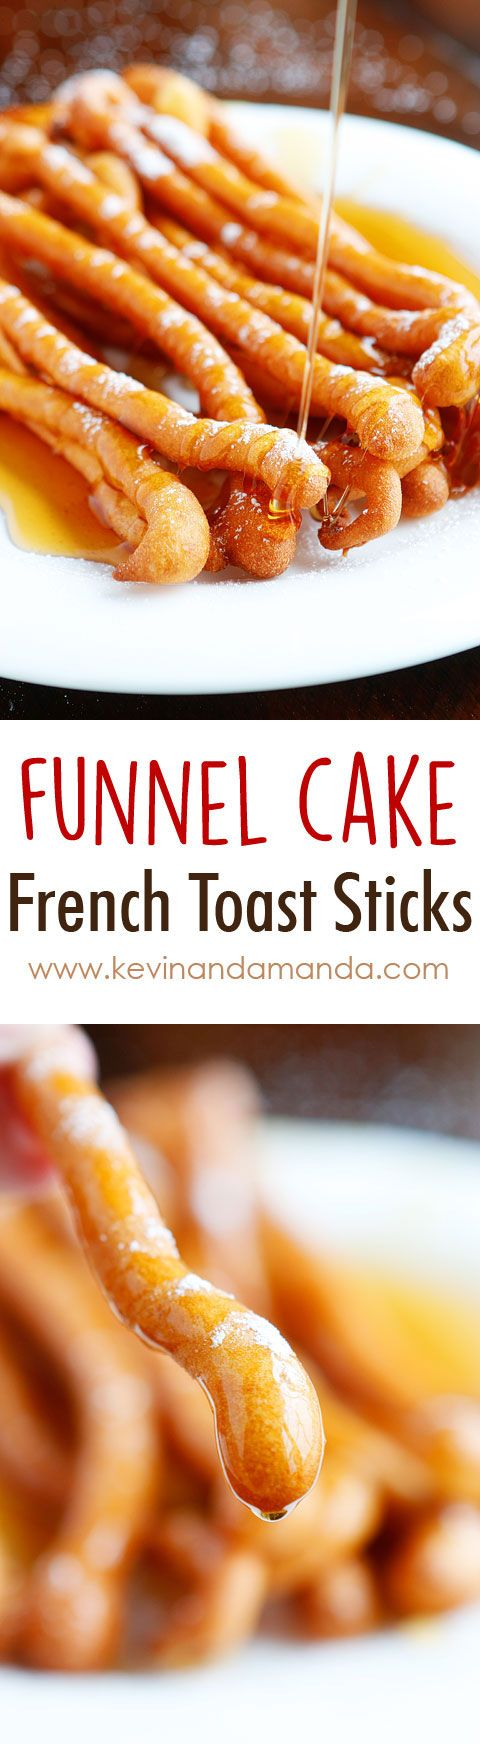 OMG these are Funnel Cake French Toast Sticks! What a fun idea!